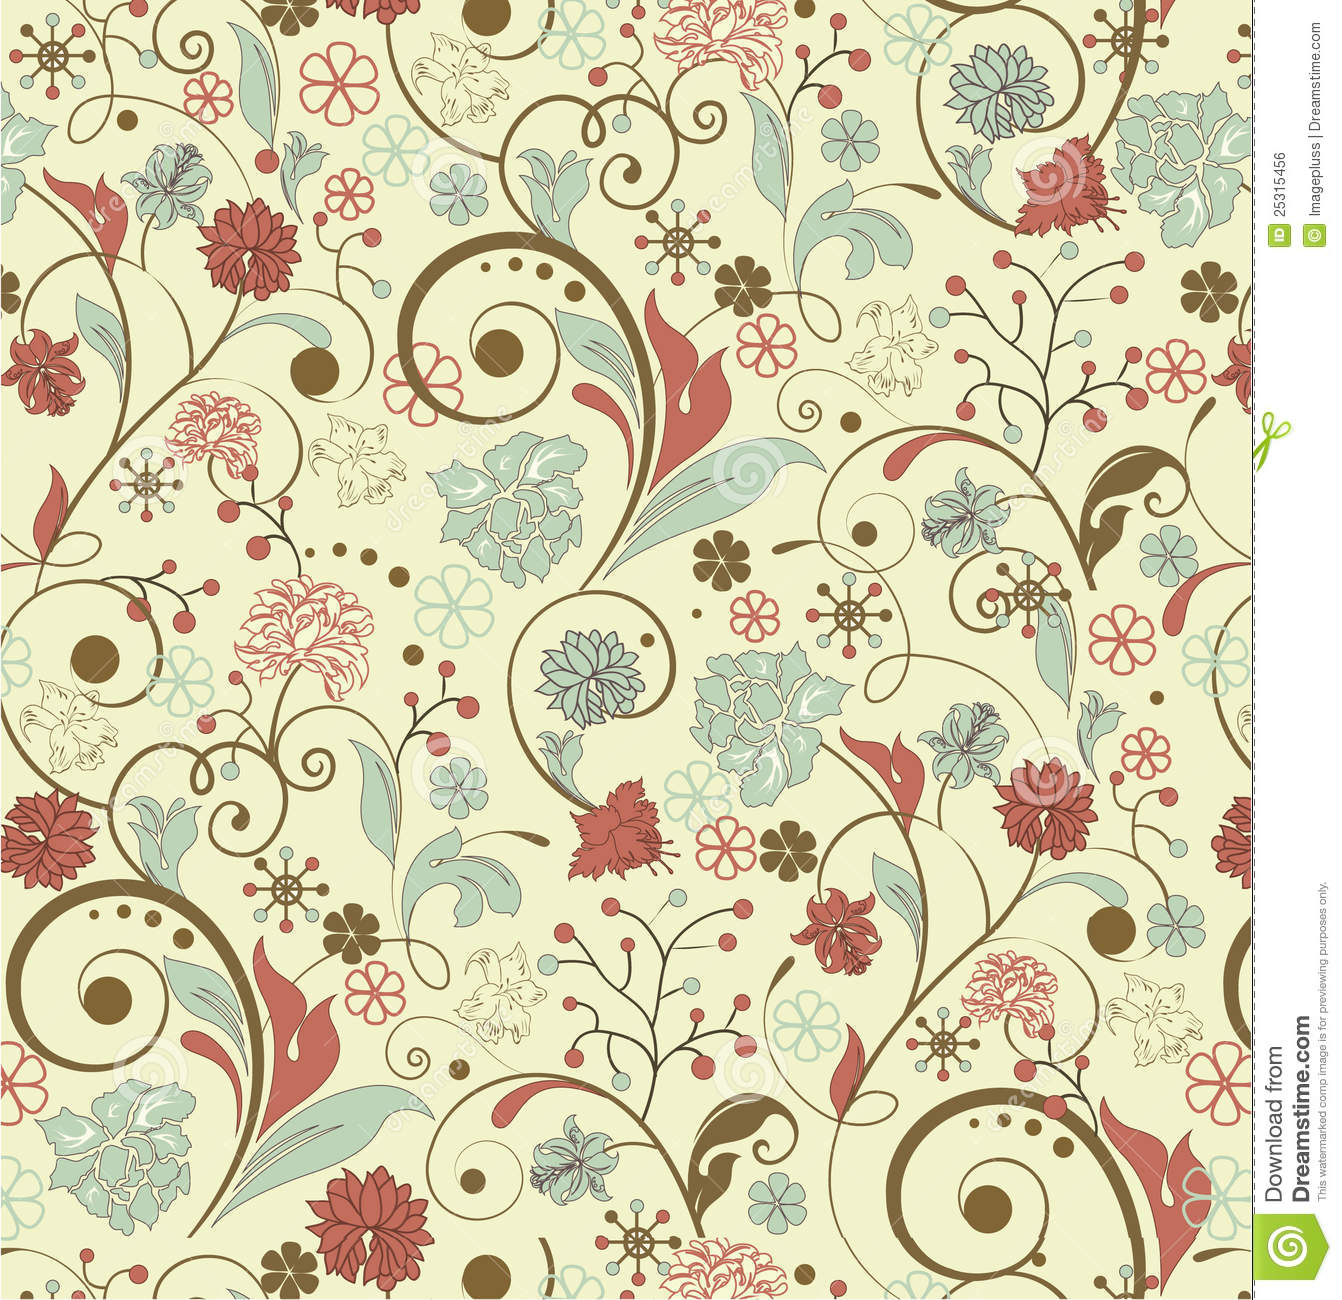 Free floral background images png stock Vintage Floral Background Royalty Free Stock Image - Image: 25315456 png stock